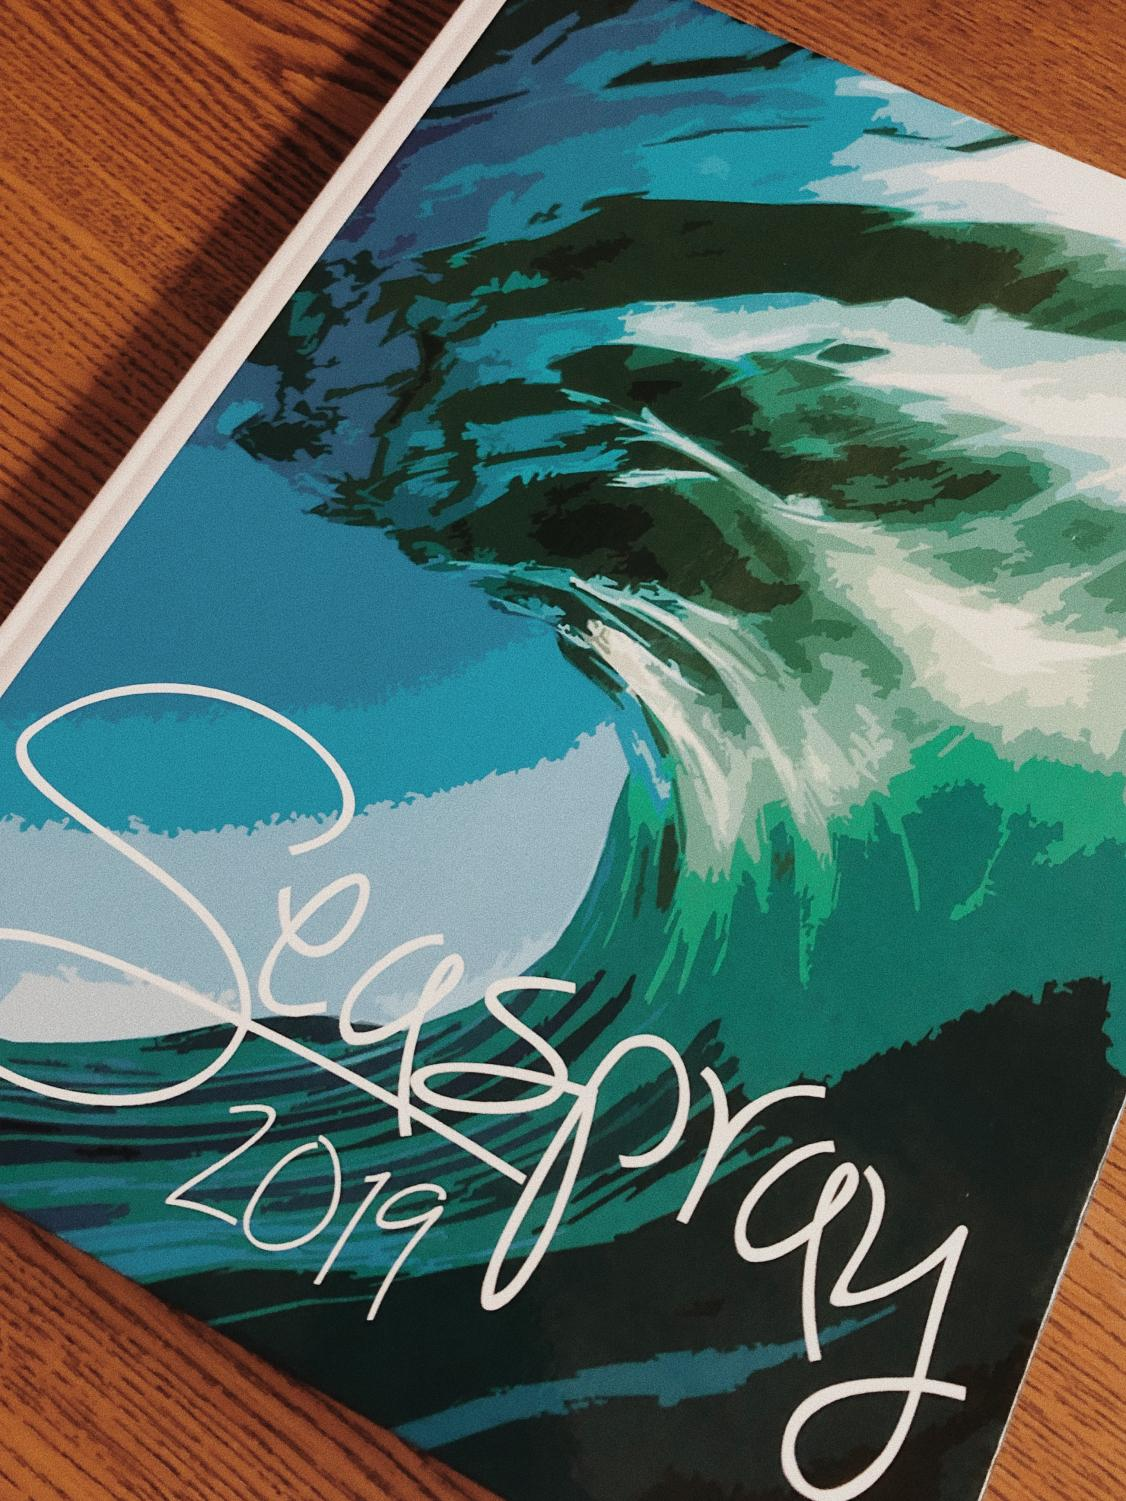 The 2019 edition of the Seaspray.